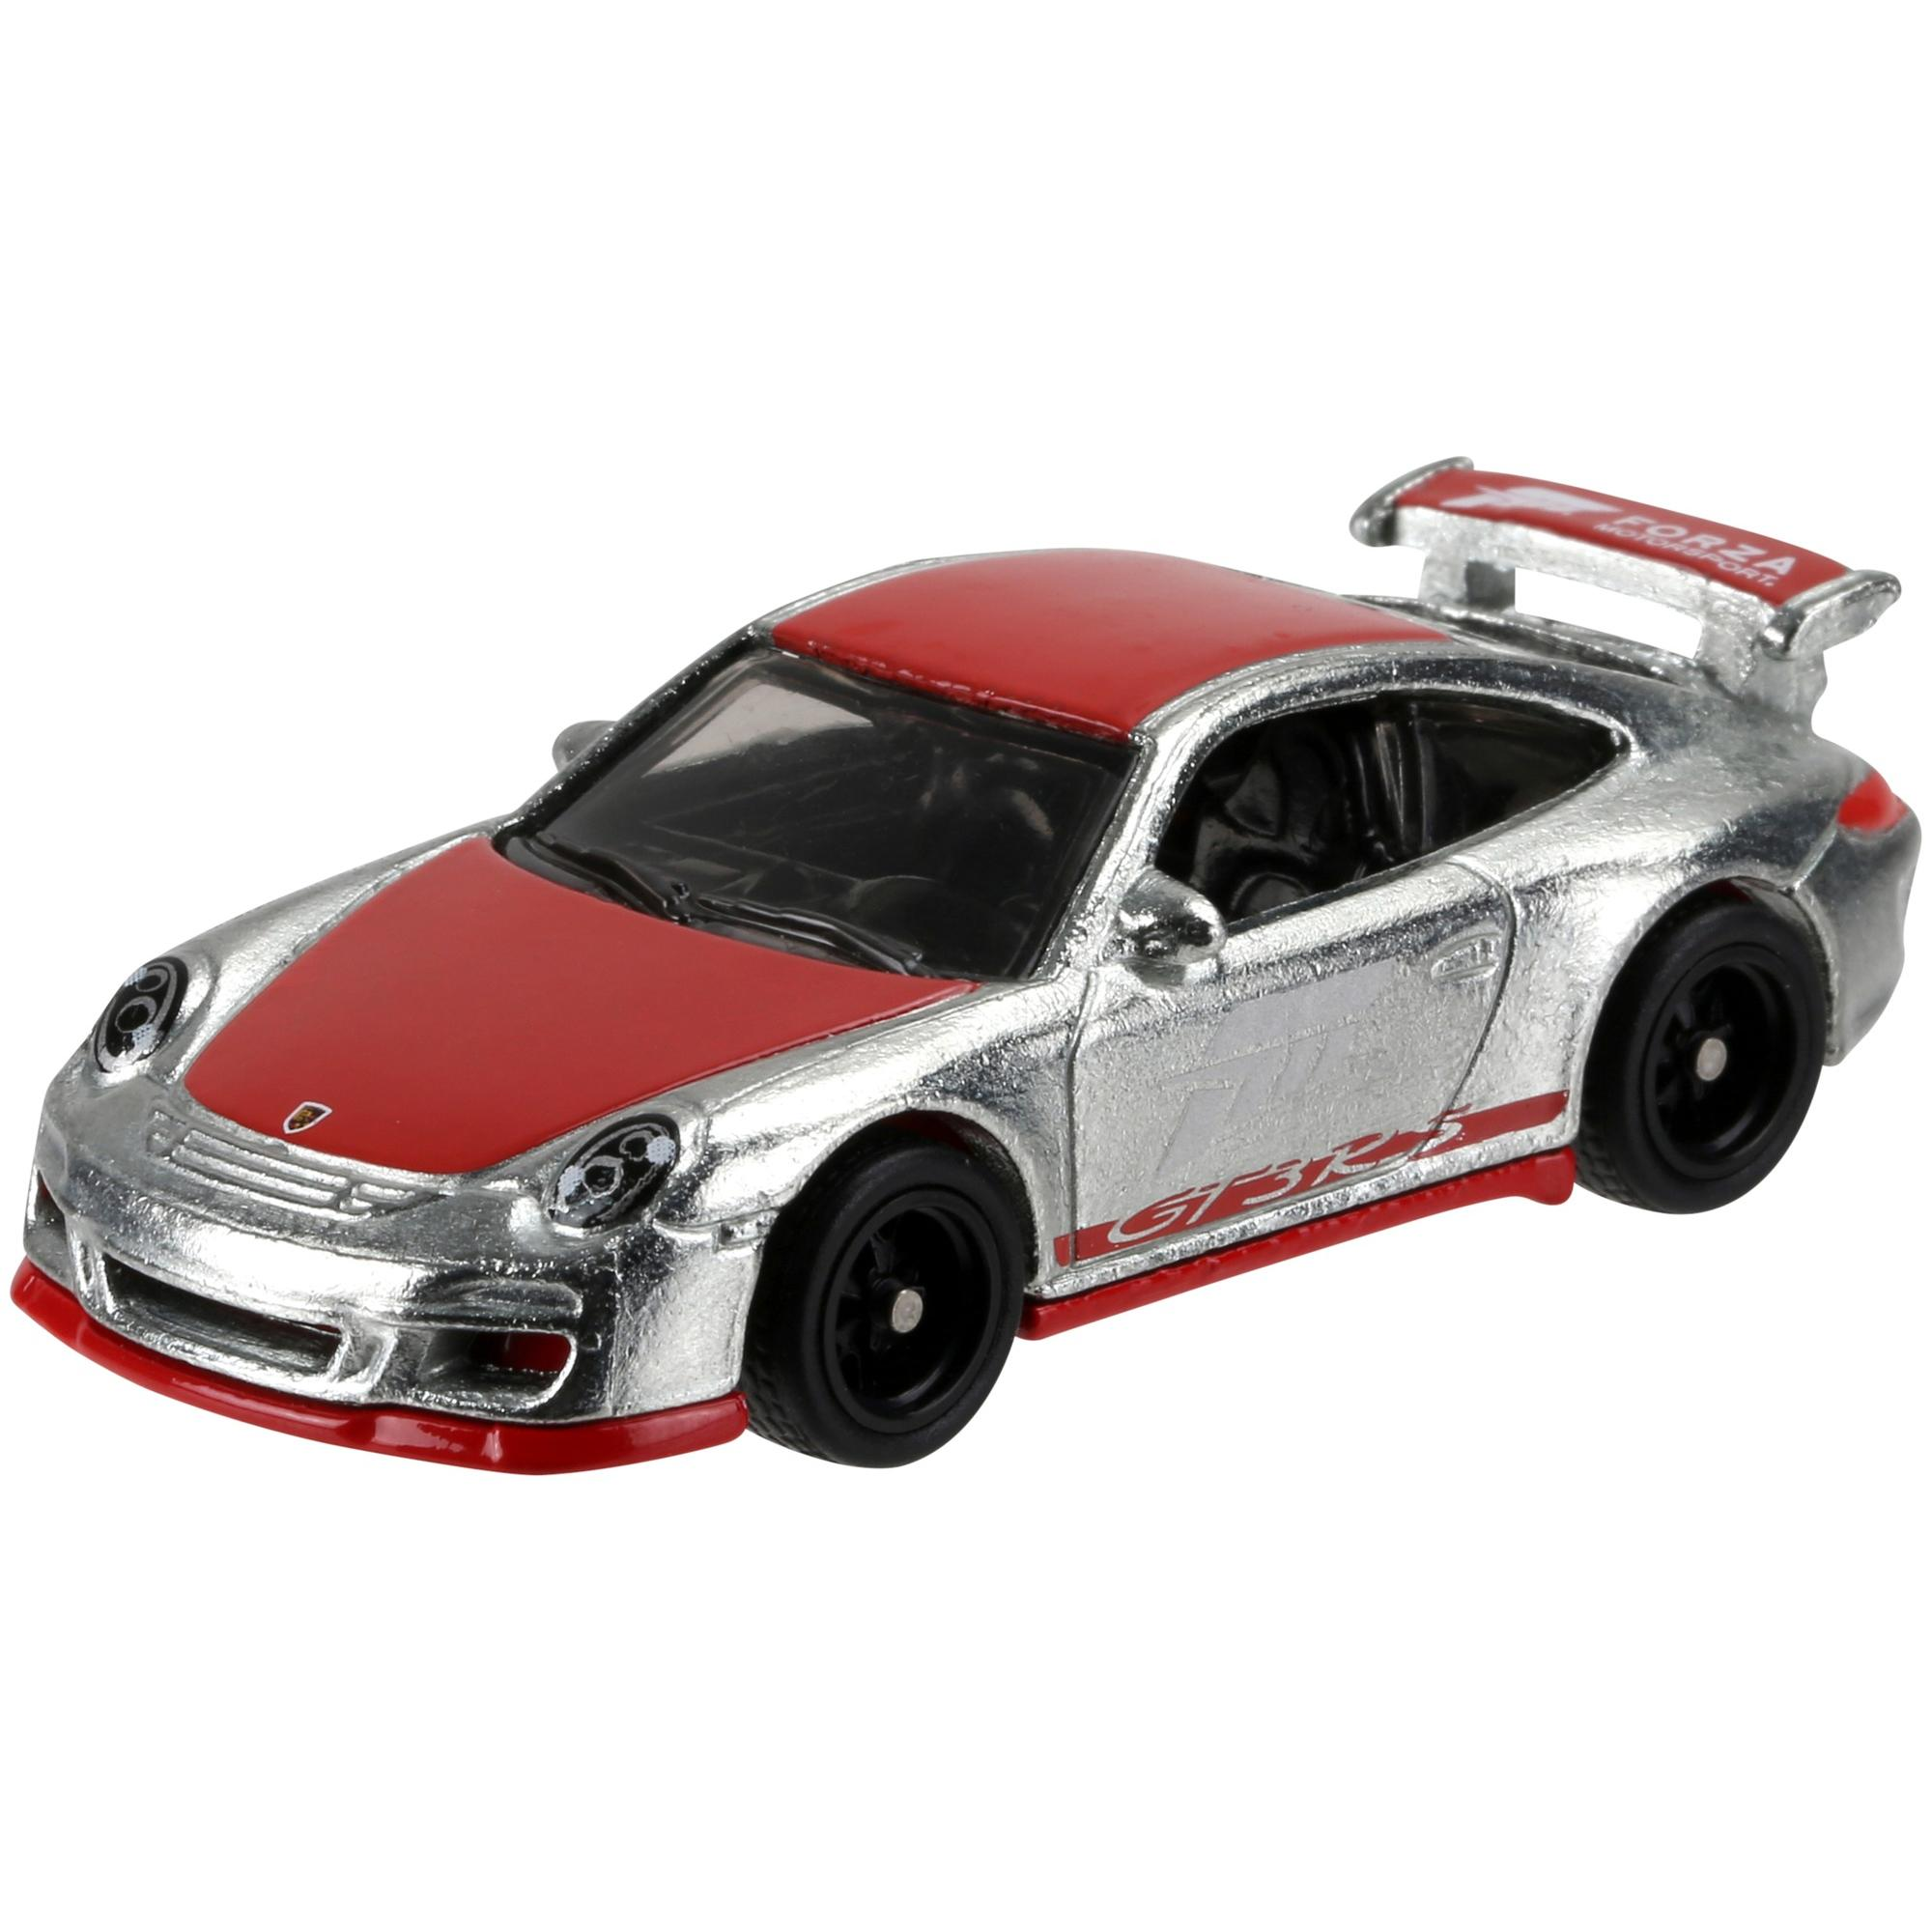 Hot Wheels Porsche 911 Gt3rs Vehicle Walmart Com